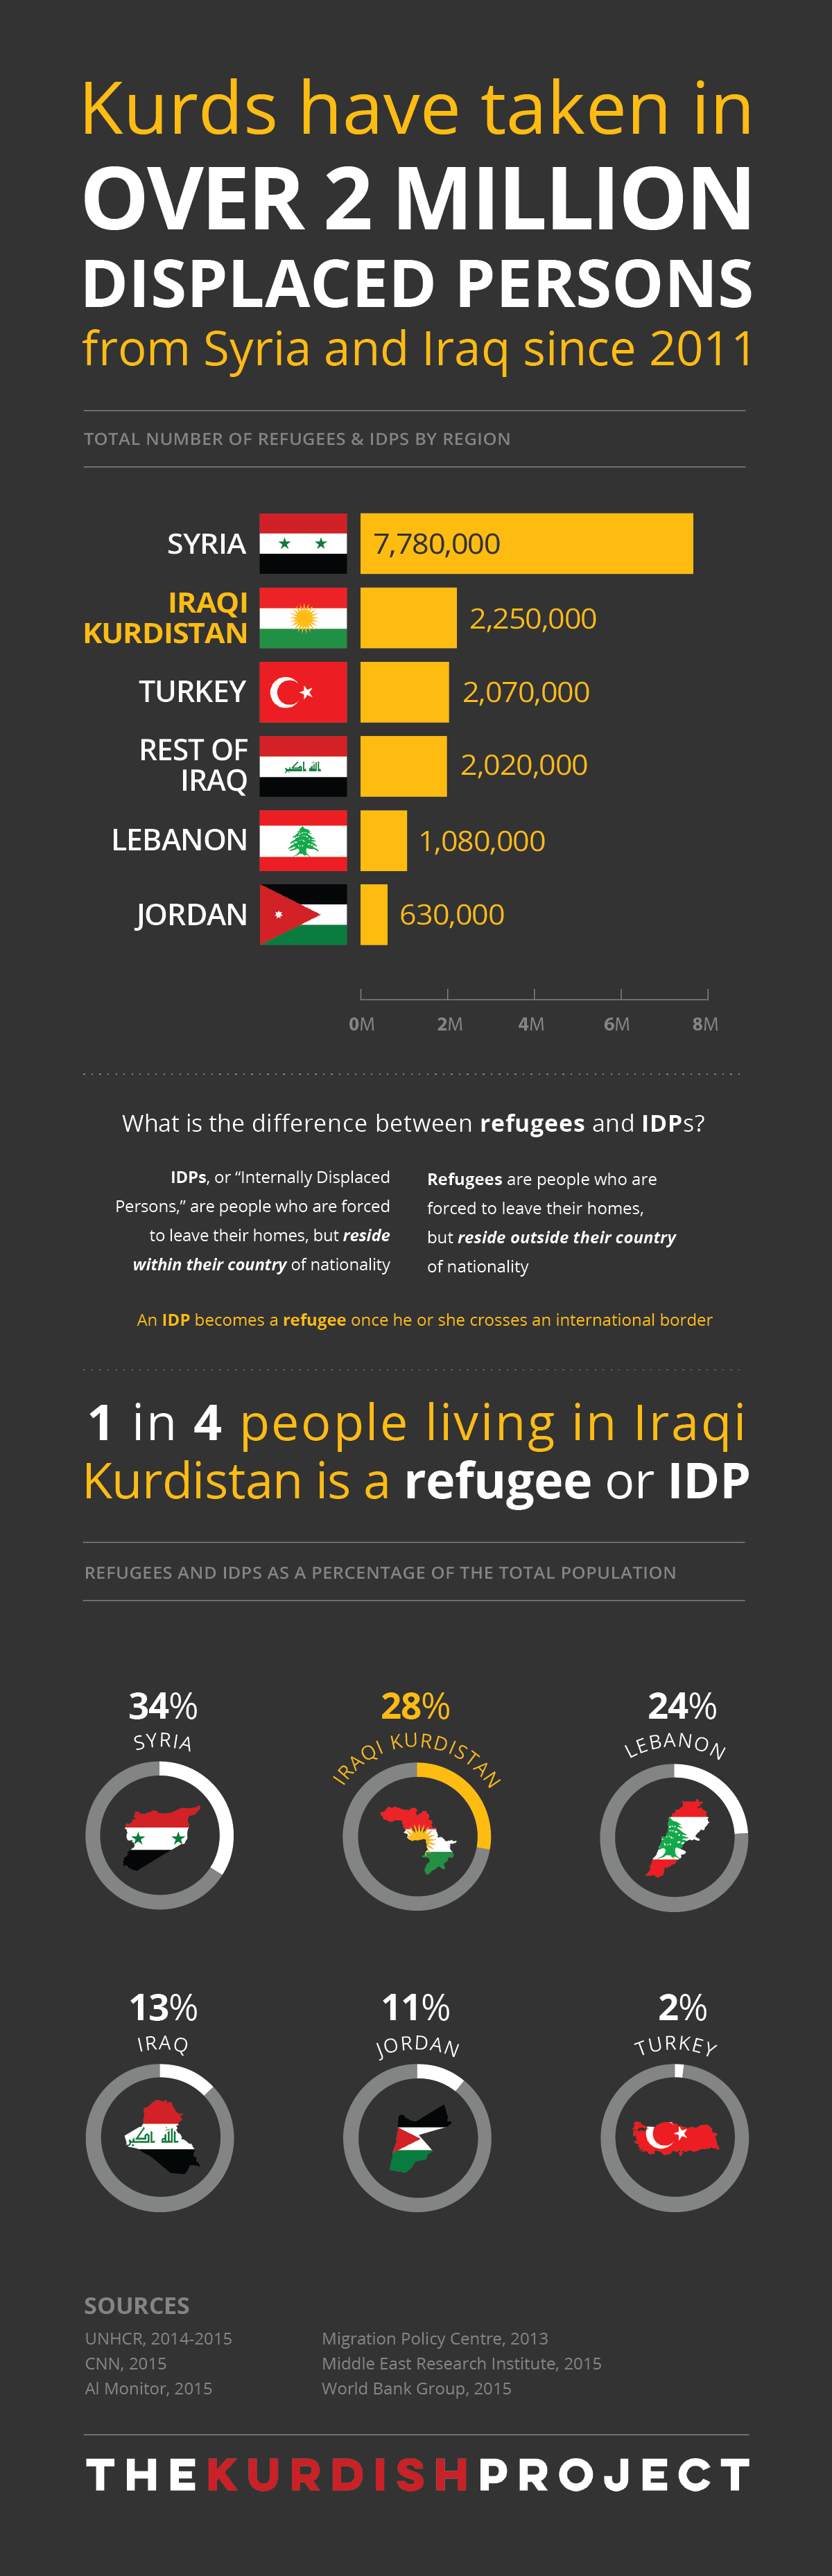 Kurds and the Refugee Crisis